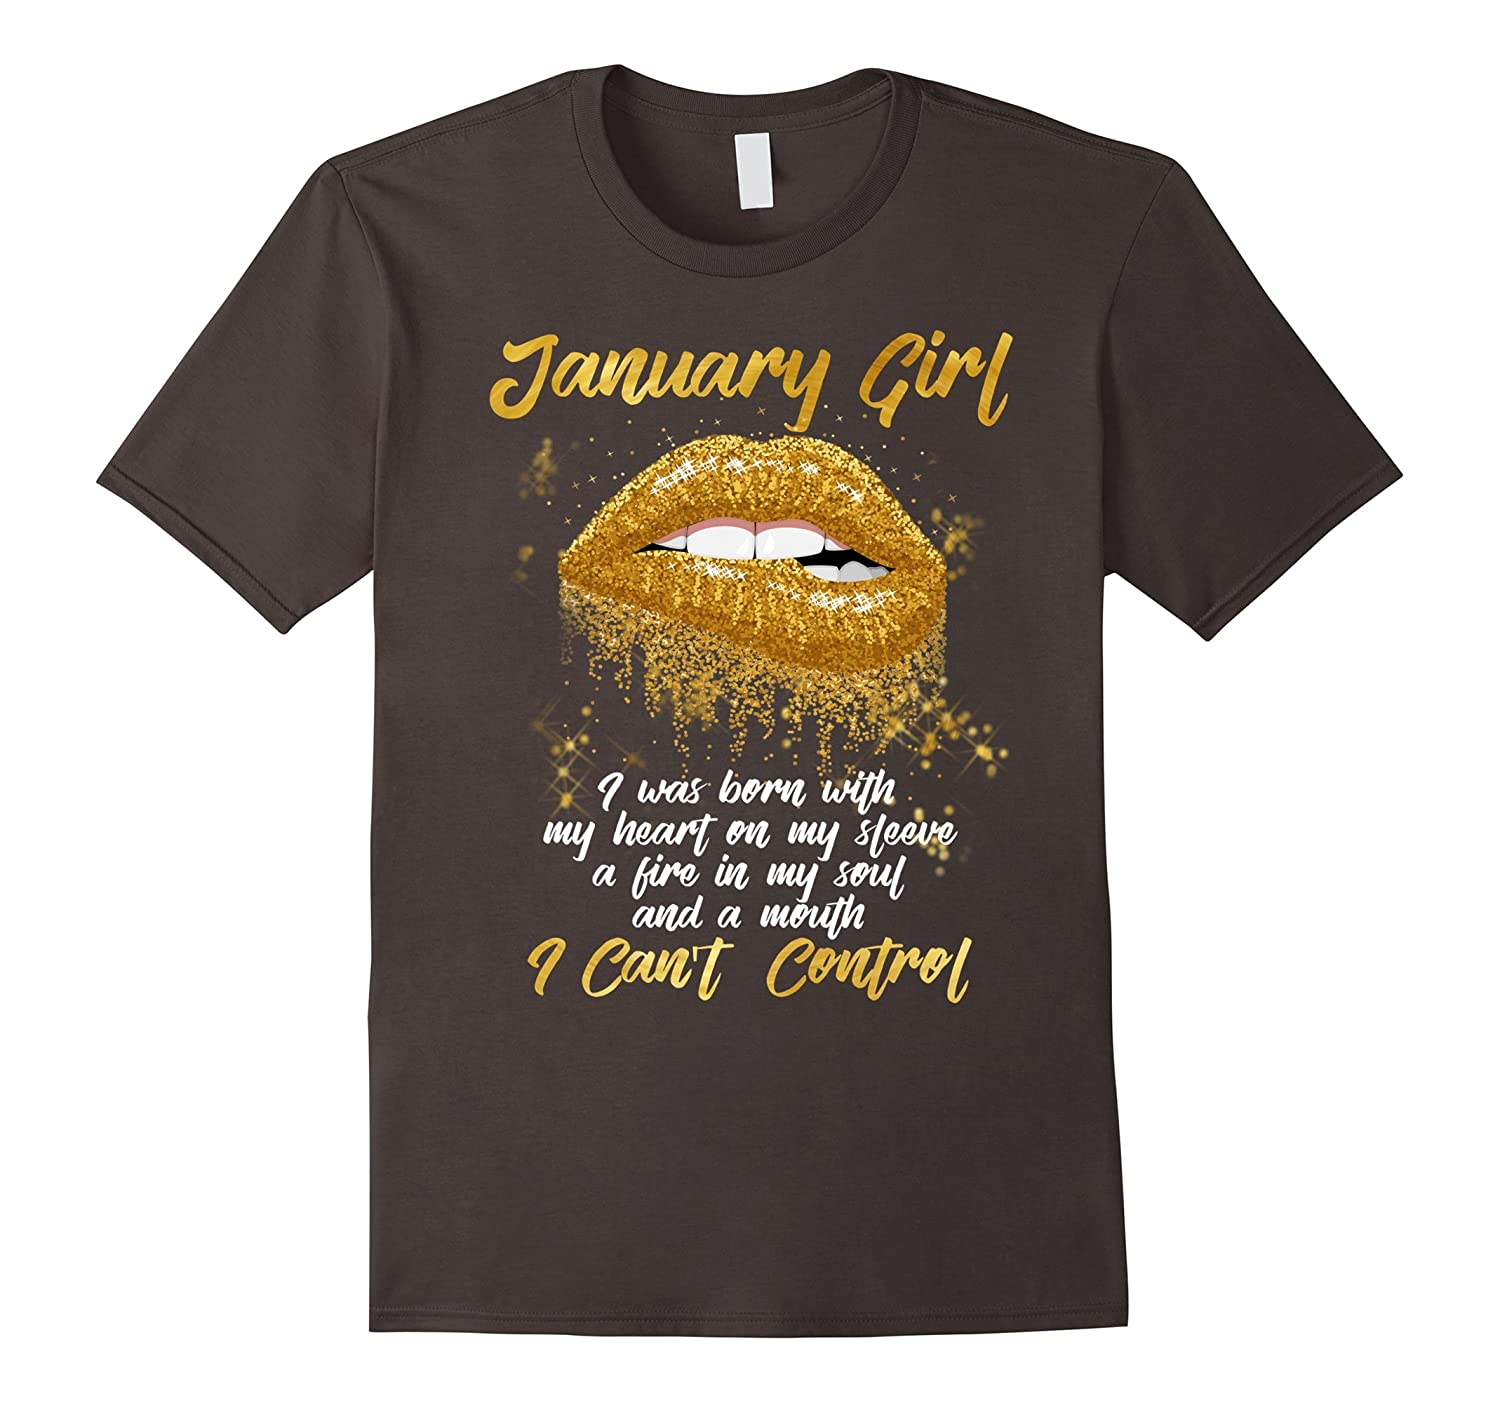 I'm a January Girl Shirt Funny Birthday T-Shirt for Women-ANZ